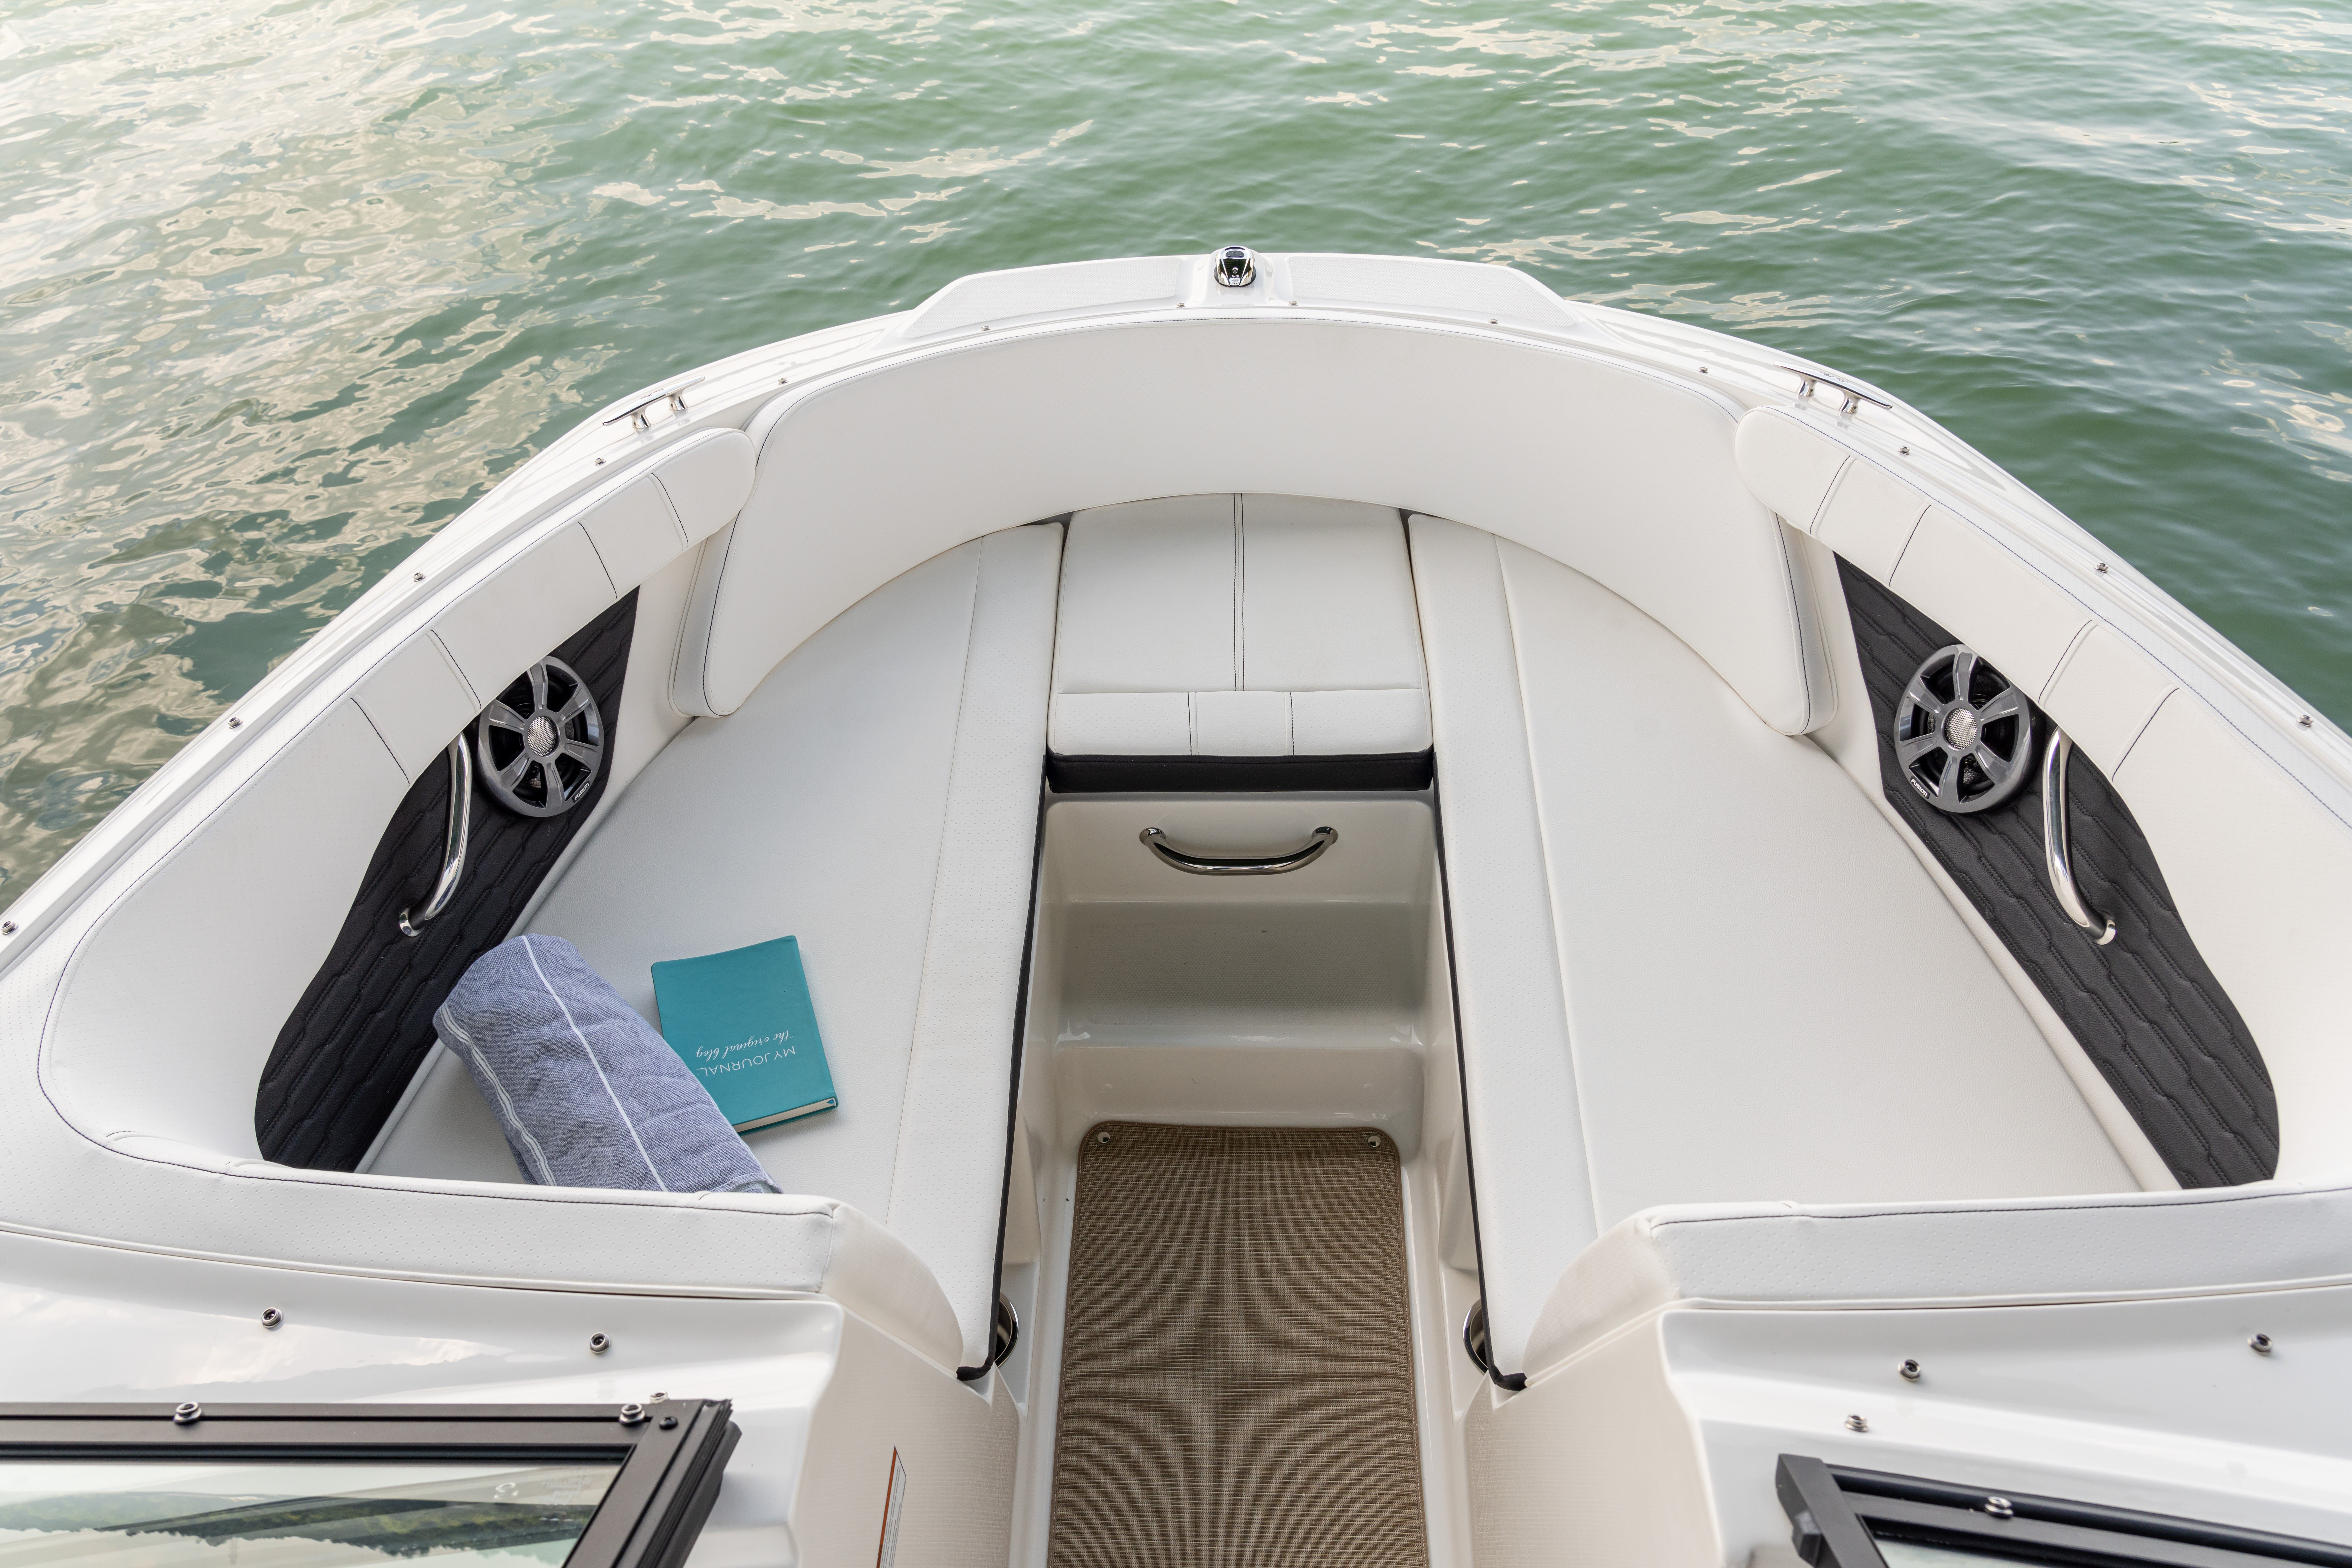 2022 Sea Ray boat for sale, model of the boat is 190spx & Image # 5 of 6